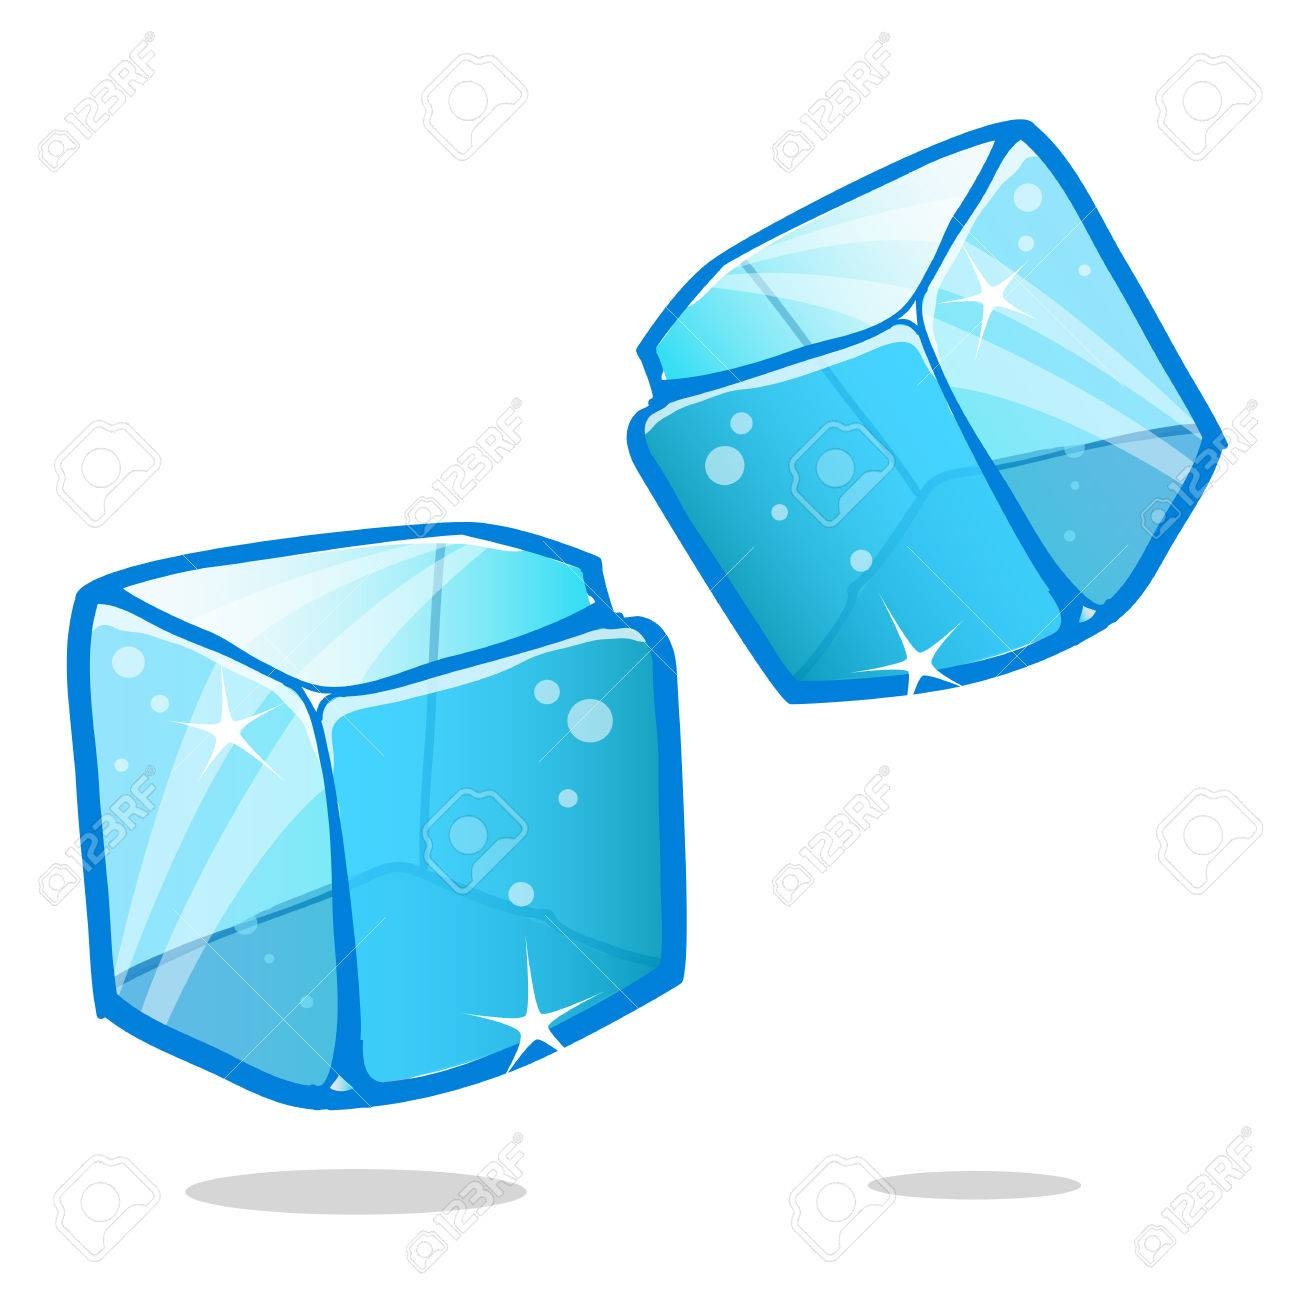 Ice Cubes And Melted Ice Cube Vector Set On White Background Royalty Free Cliparts Vectors And Stock Illustration Image 66806952